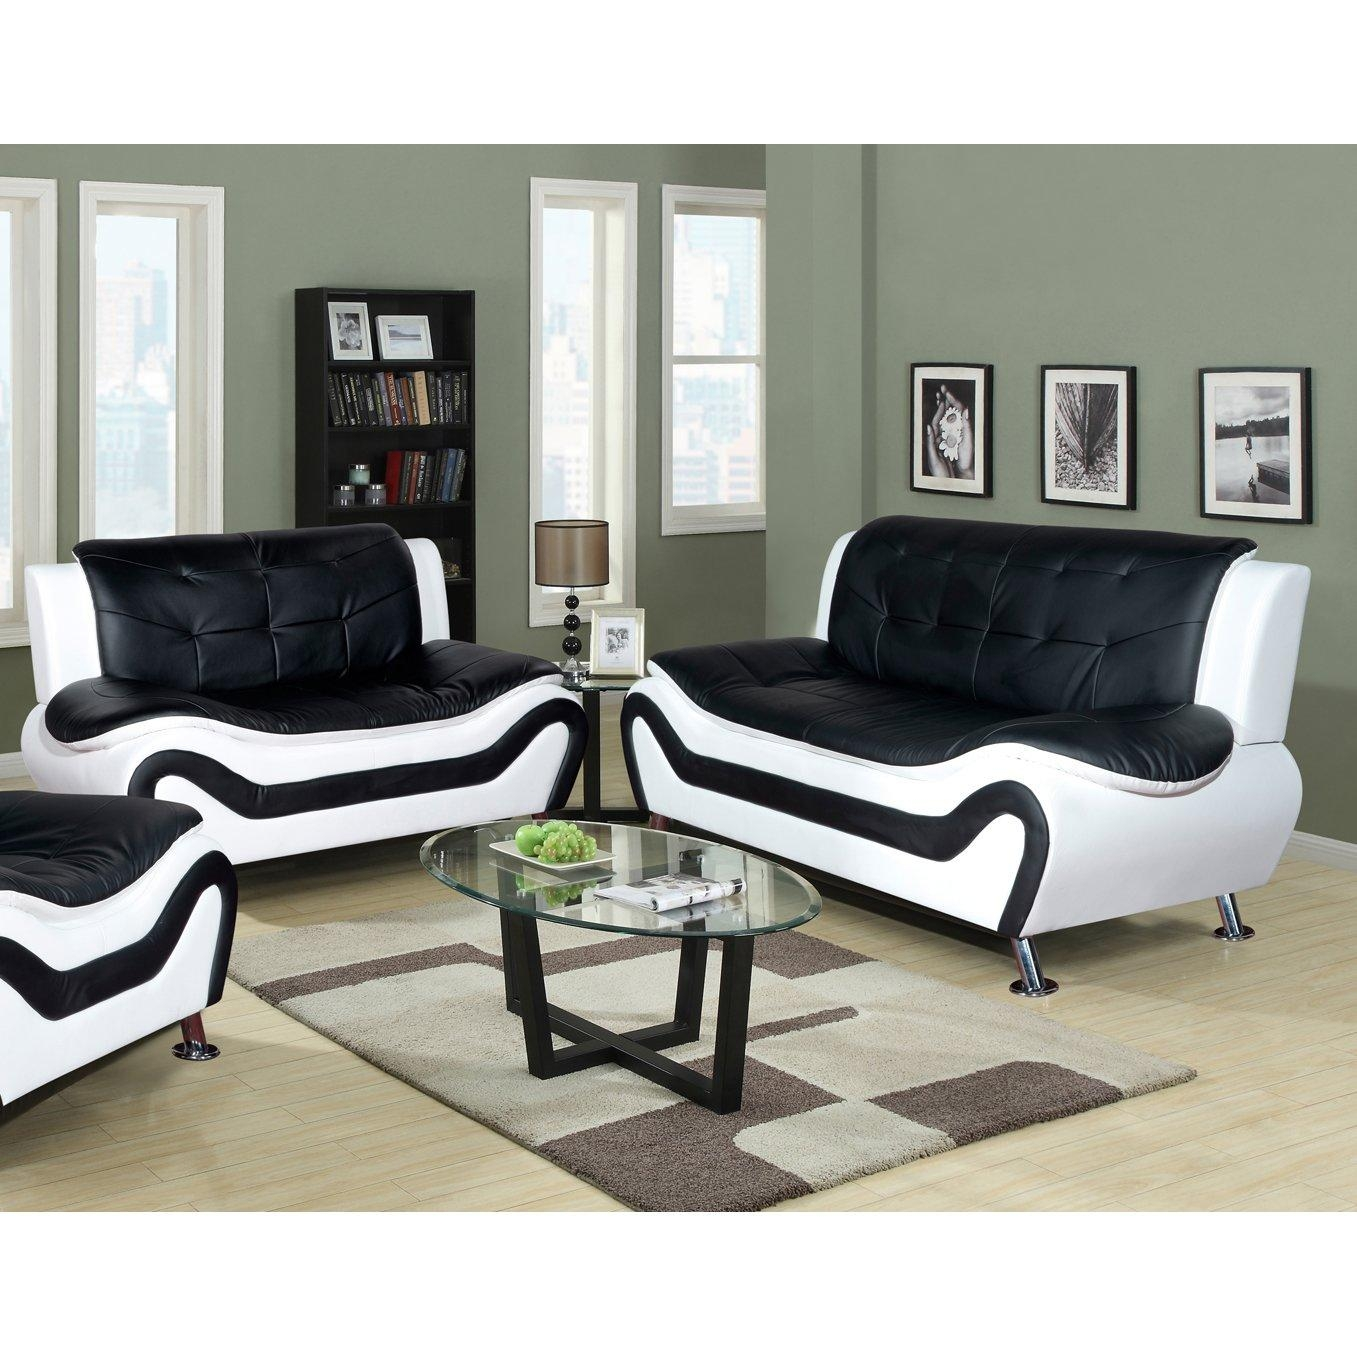 2019 latest black and white sofas and loveseats sofa ideas - Black and white living room furniture ...